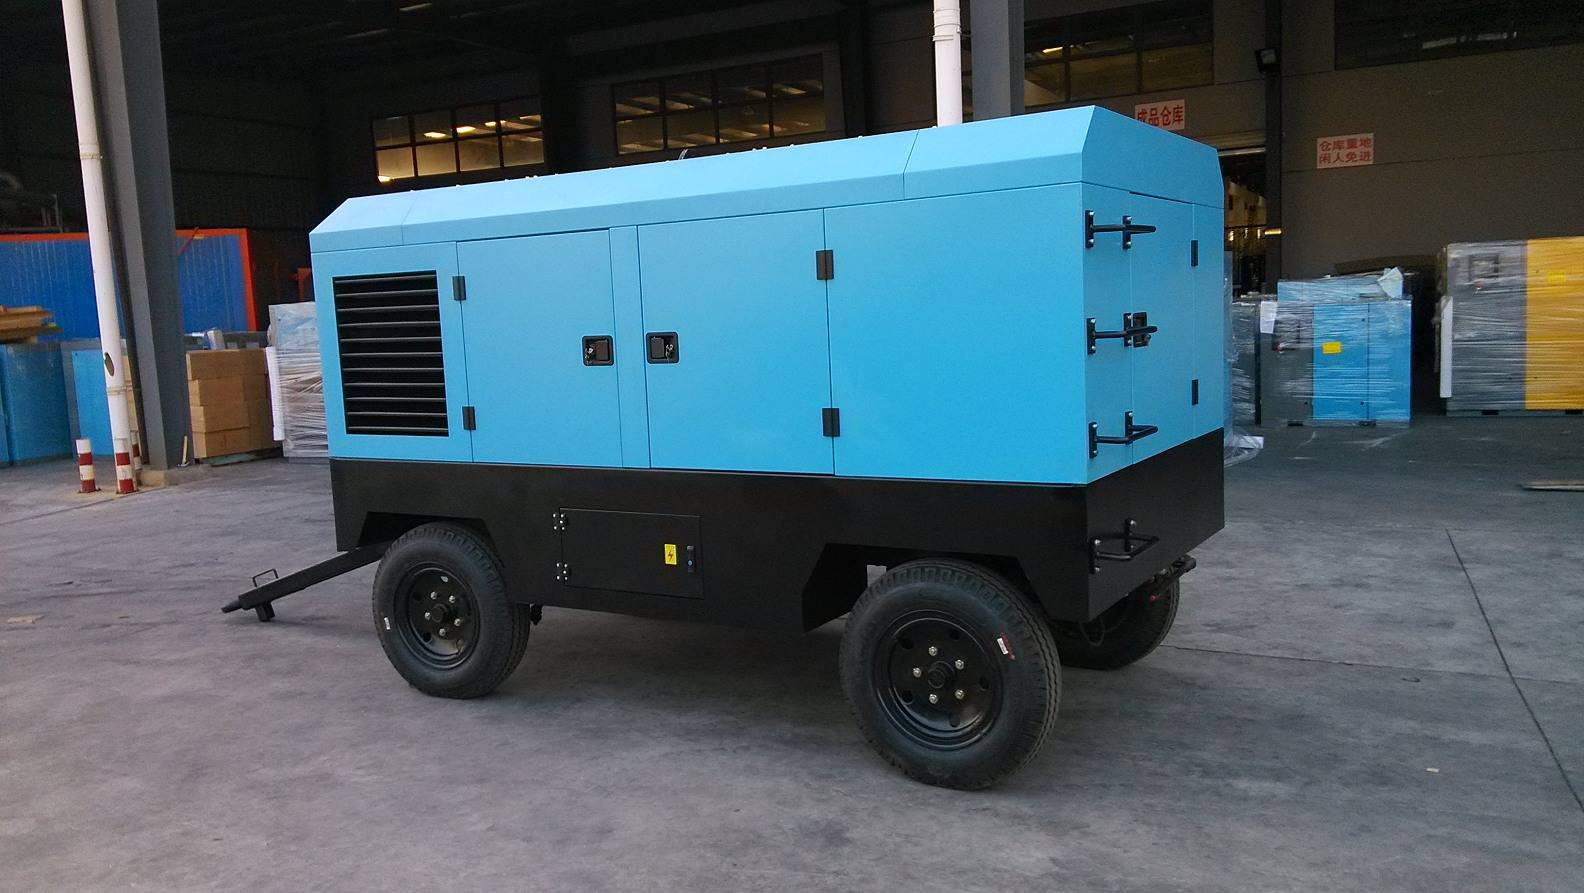 Movable electrical rotary screw compressor